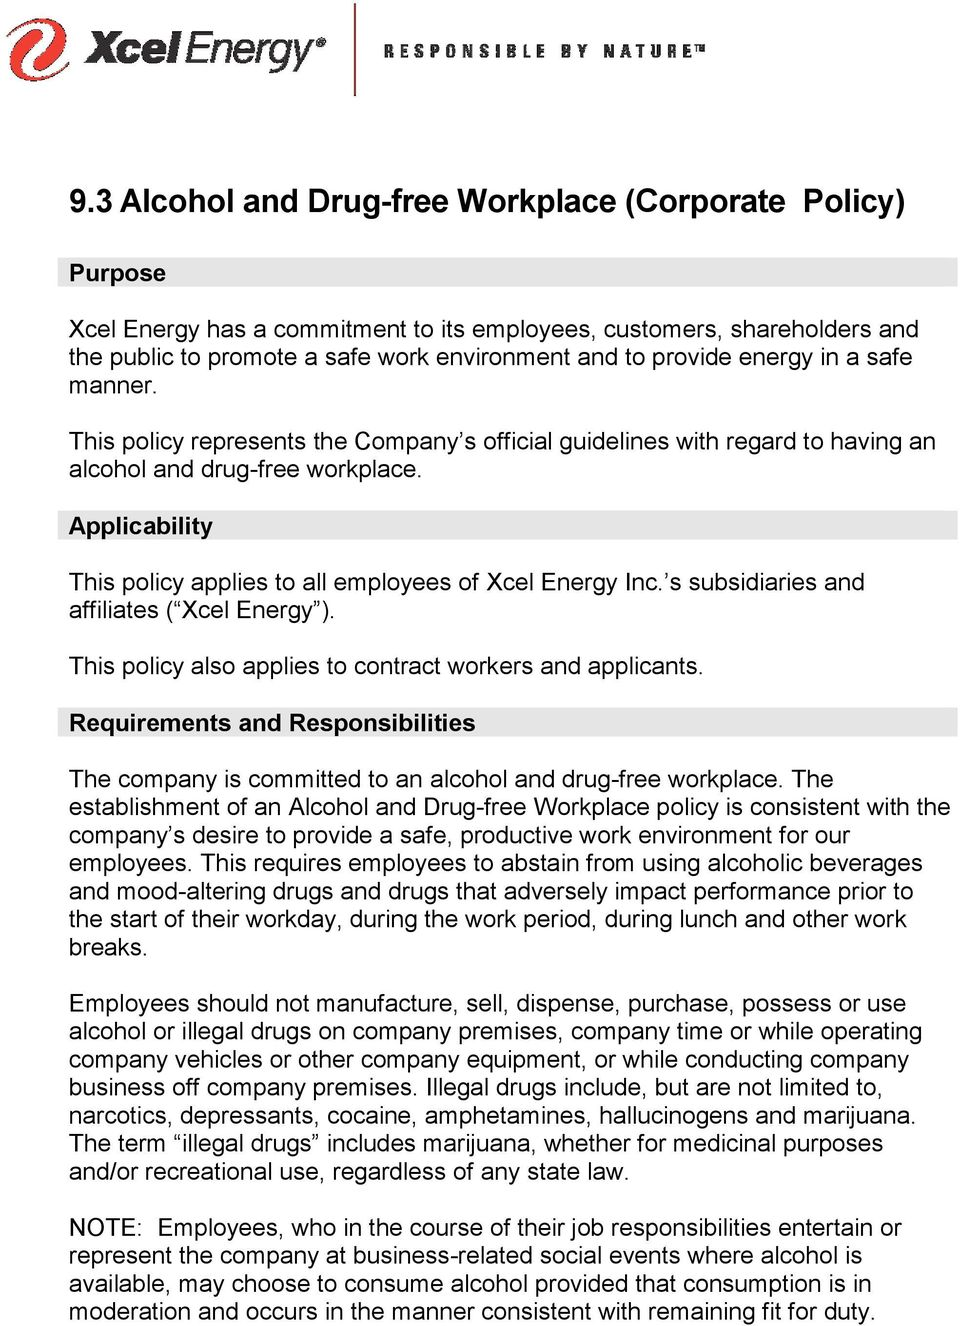 Applicability This policy applies to all employees of Xcel Energy Inc. s subsidiaries and affiliates ( Xcel Energy ). This policy also applies to contract workers and applicants.